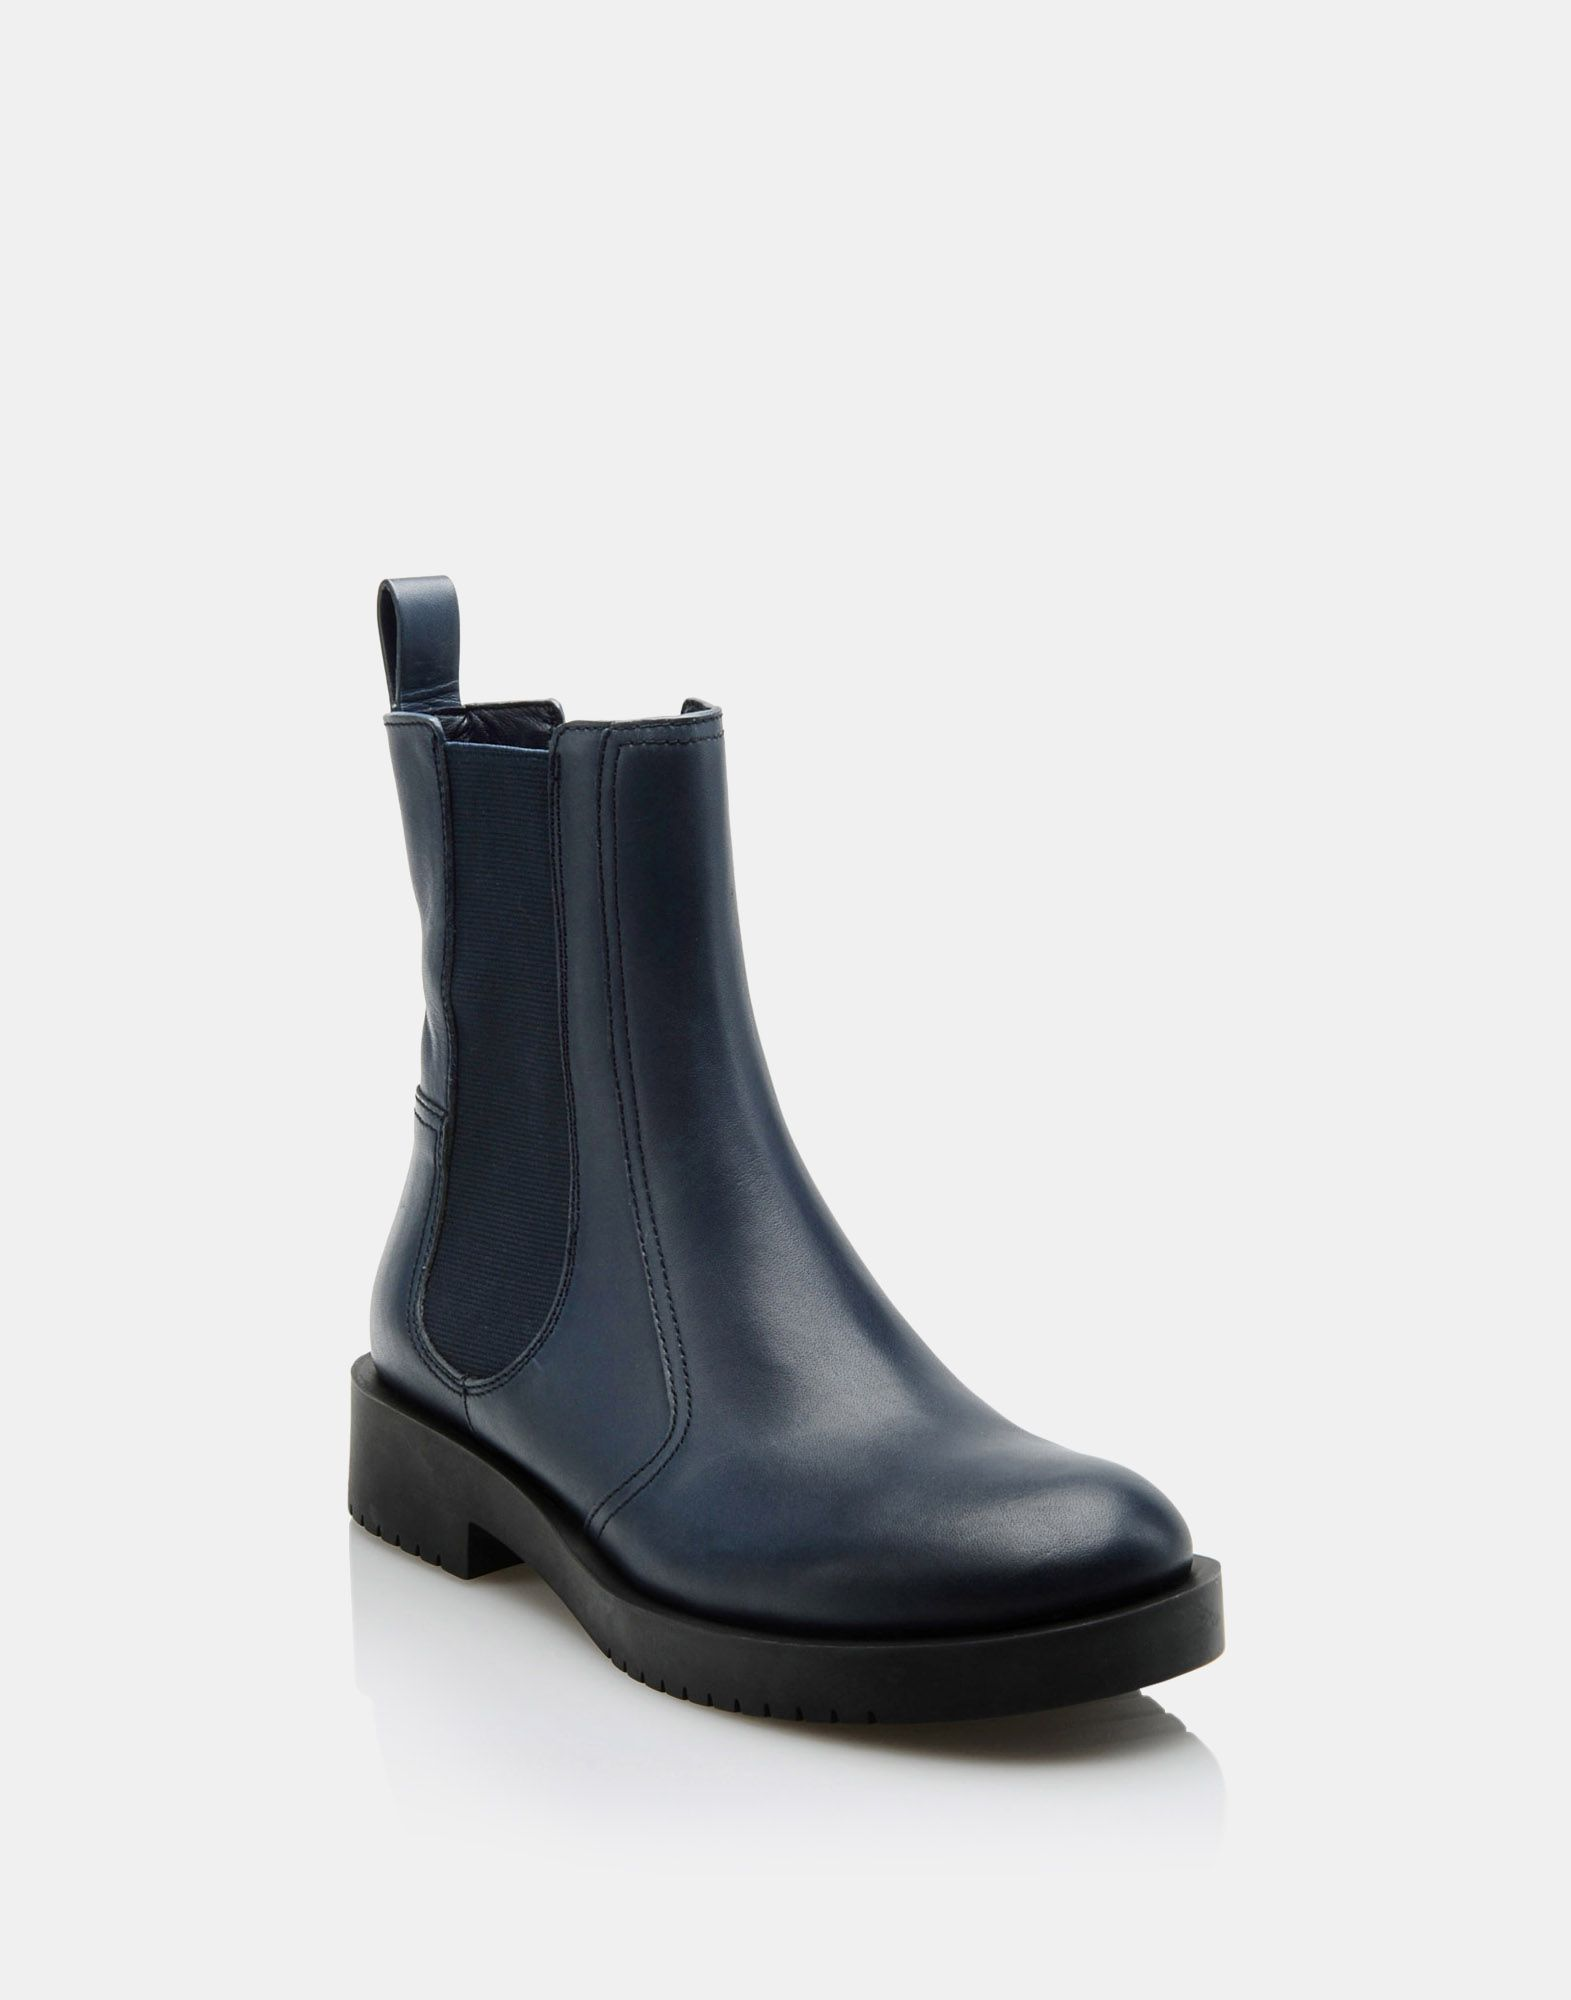 Jil Sander Leather ankle boots how much for sale choice cheap online outlet affordable order online sale buy 7EQKtfxt